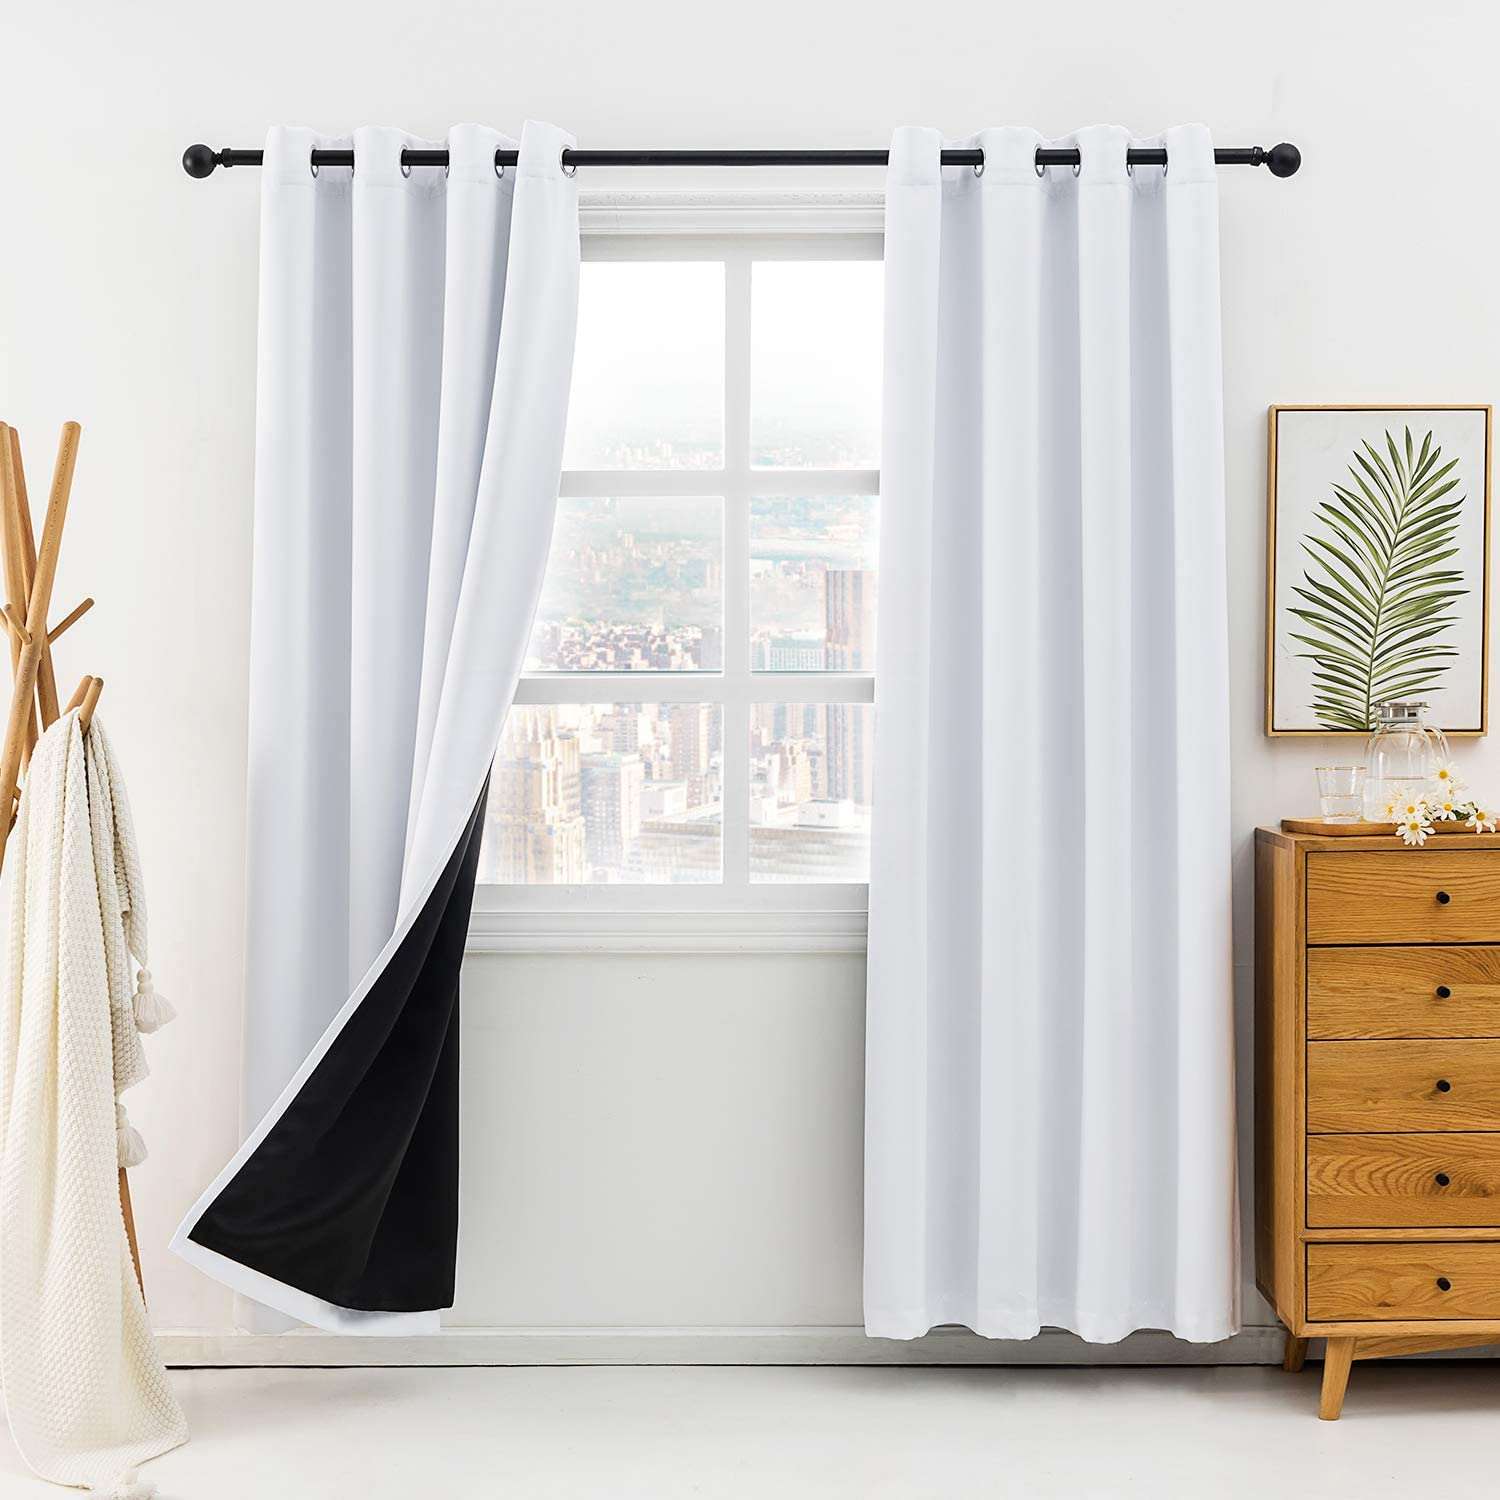 Anjee Blackout Curtains for Bedroom 100% Light Blocking Linen Curtain Room Darkening Burlap Window Curtain Noise Reducing Thermal Insulated Drapes Panels Home Decor Gifts,Greyish White 52x63 Inches